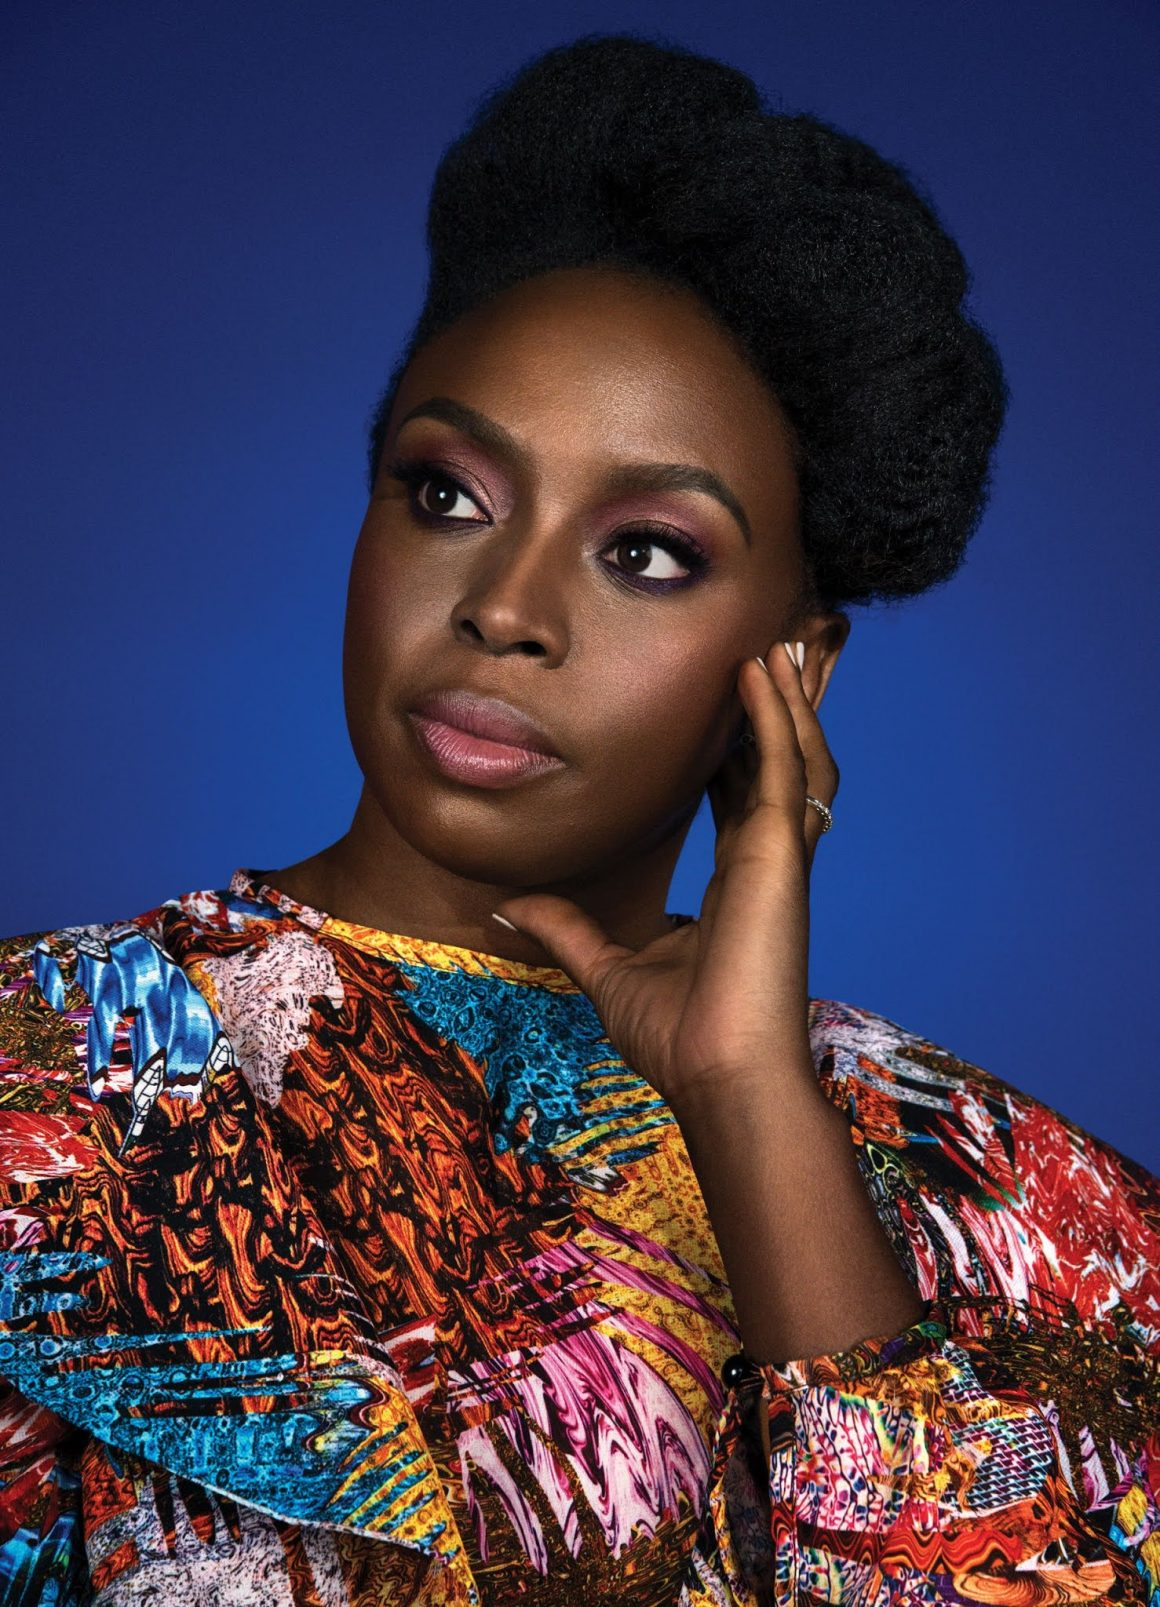 chimamanda-ngozi-adichie-writes-on-end-sars-and-20th-october-killings